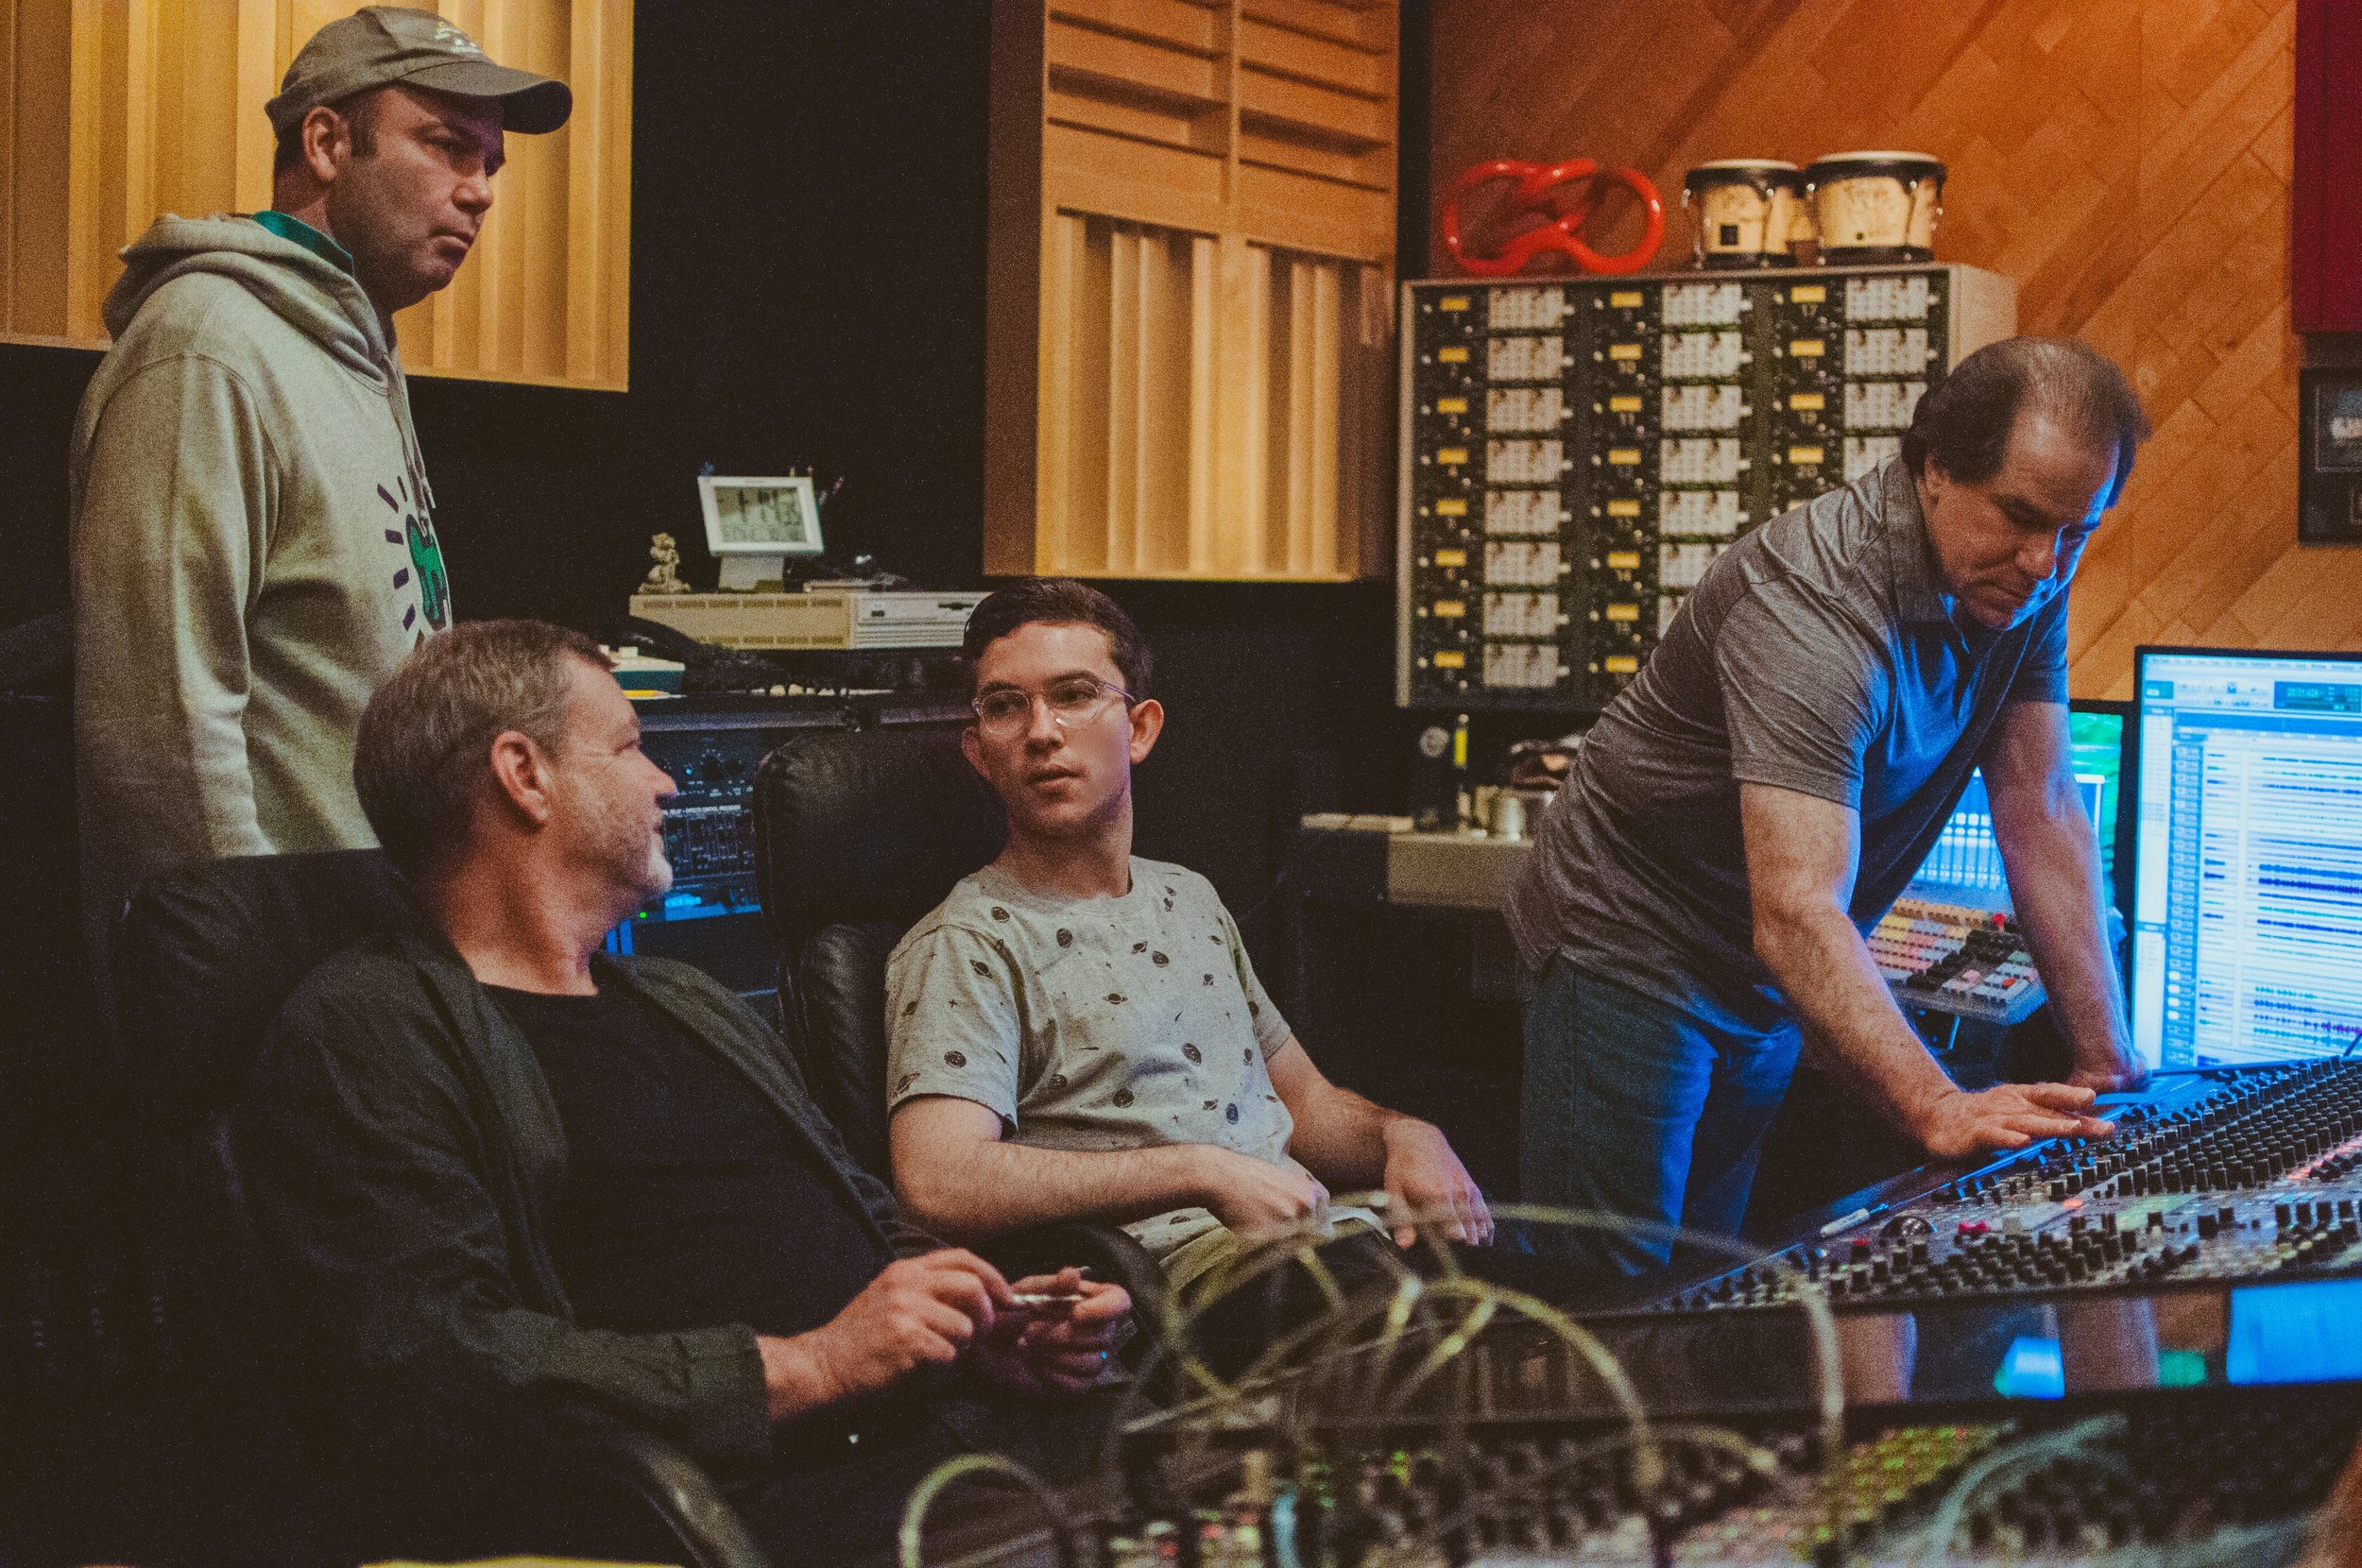 Left to right:Sean Wayland, Frank Kimbrough, Evan Harris, Mike Marciano behind the desk at Systems Two Studios